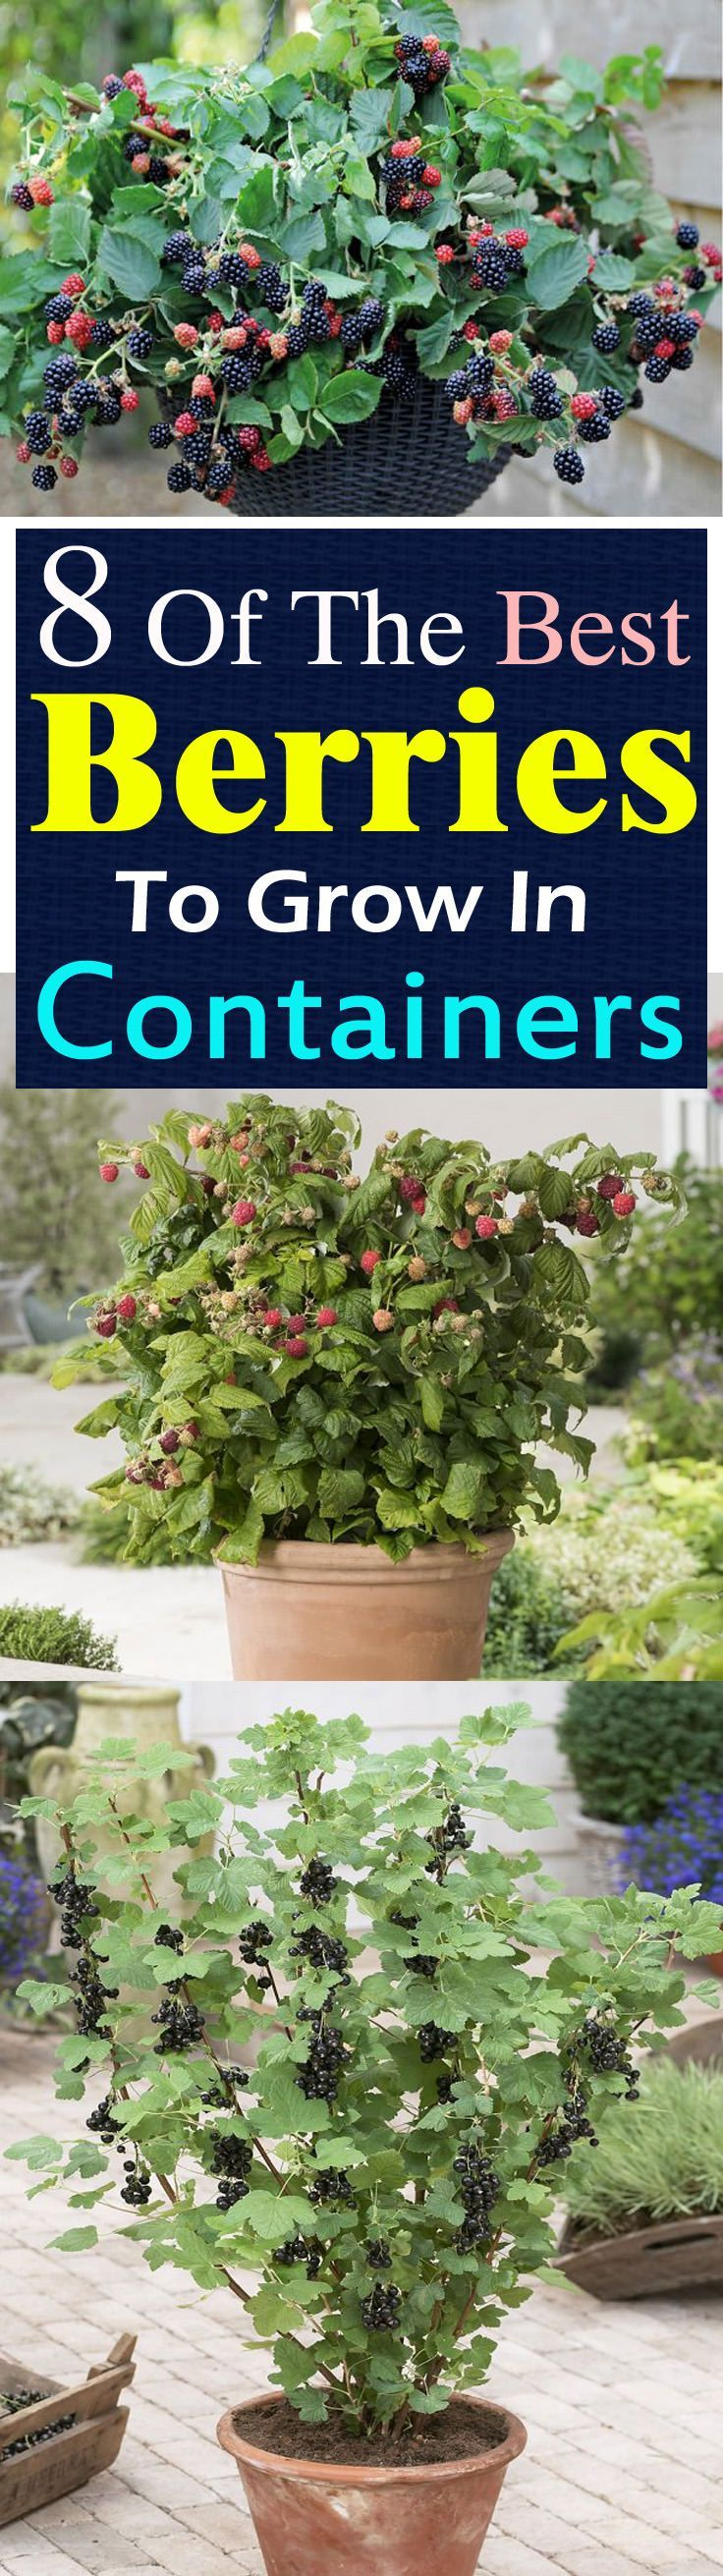 Of The Best Berries To Grow In Containers Want to grow berries? But what to do if you don't have space to plant them? Growing berries in containers is the answer!Want to grow berries? But what to do if you don't have space to plant them? Growing berries in containers is the answer!